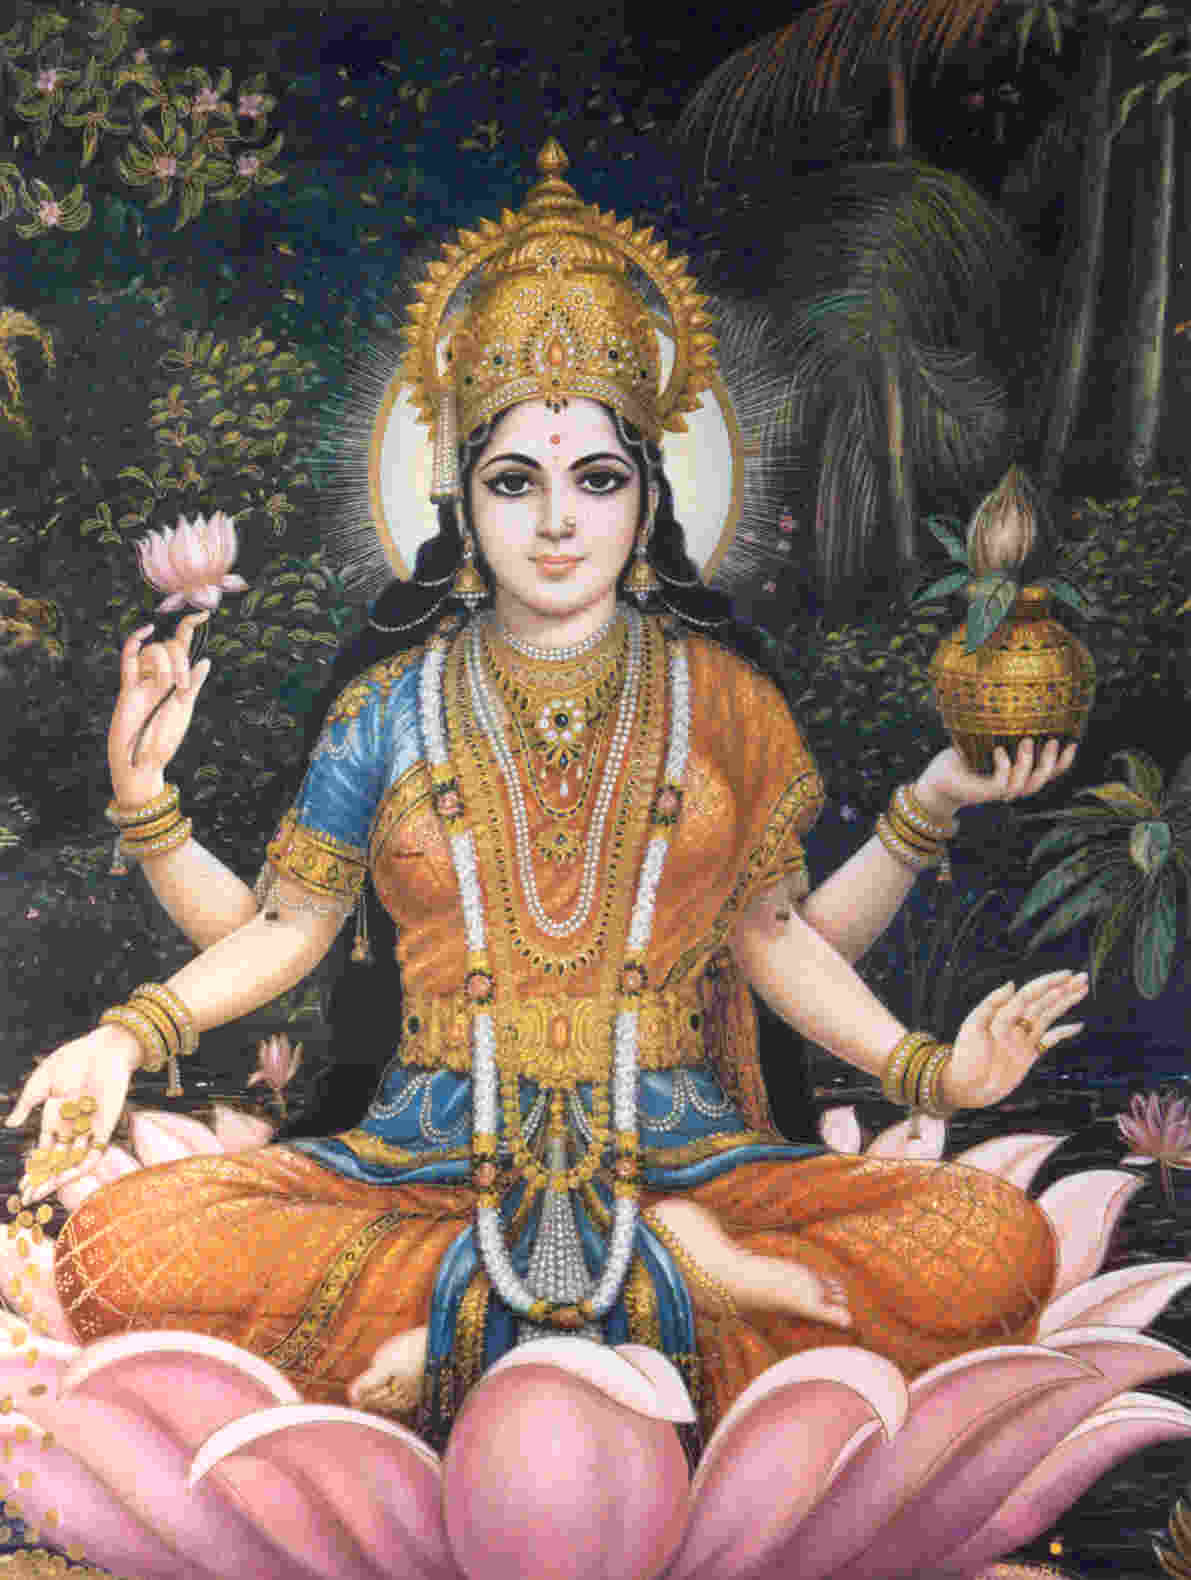 Lakshmi Goddess of Fortune